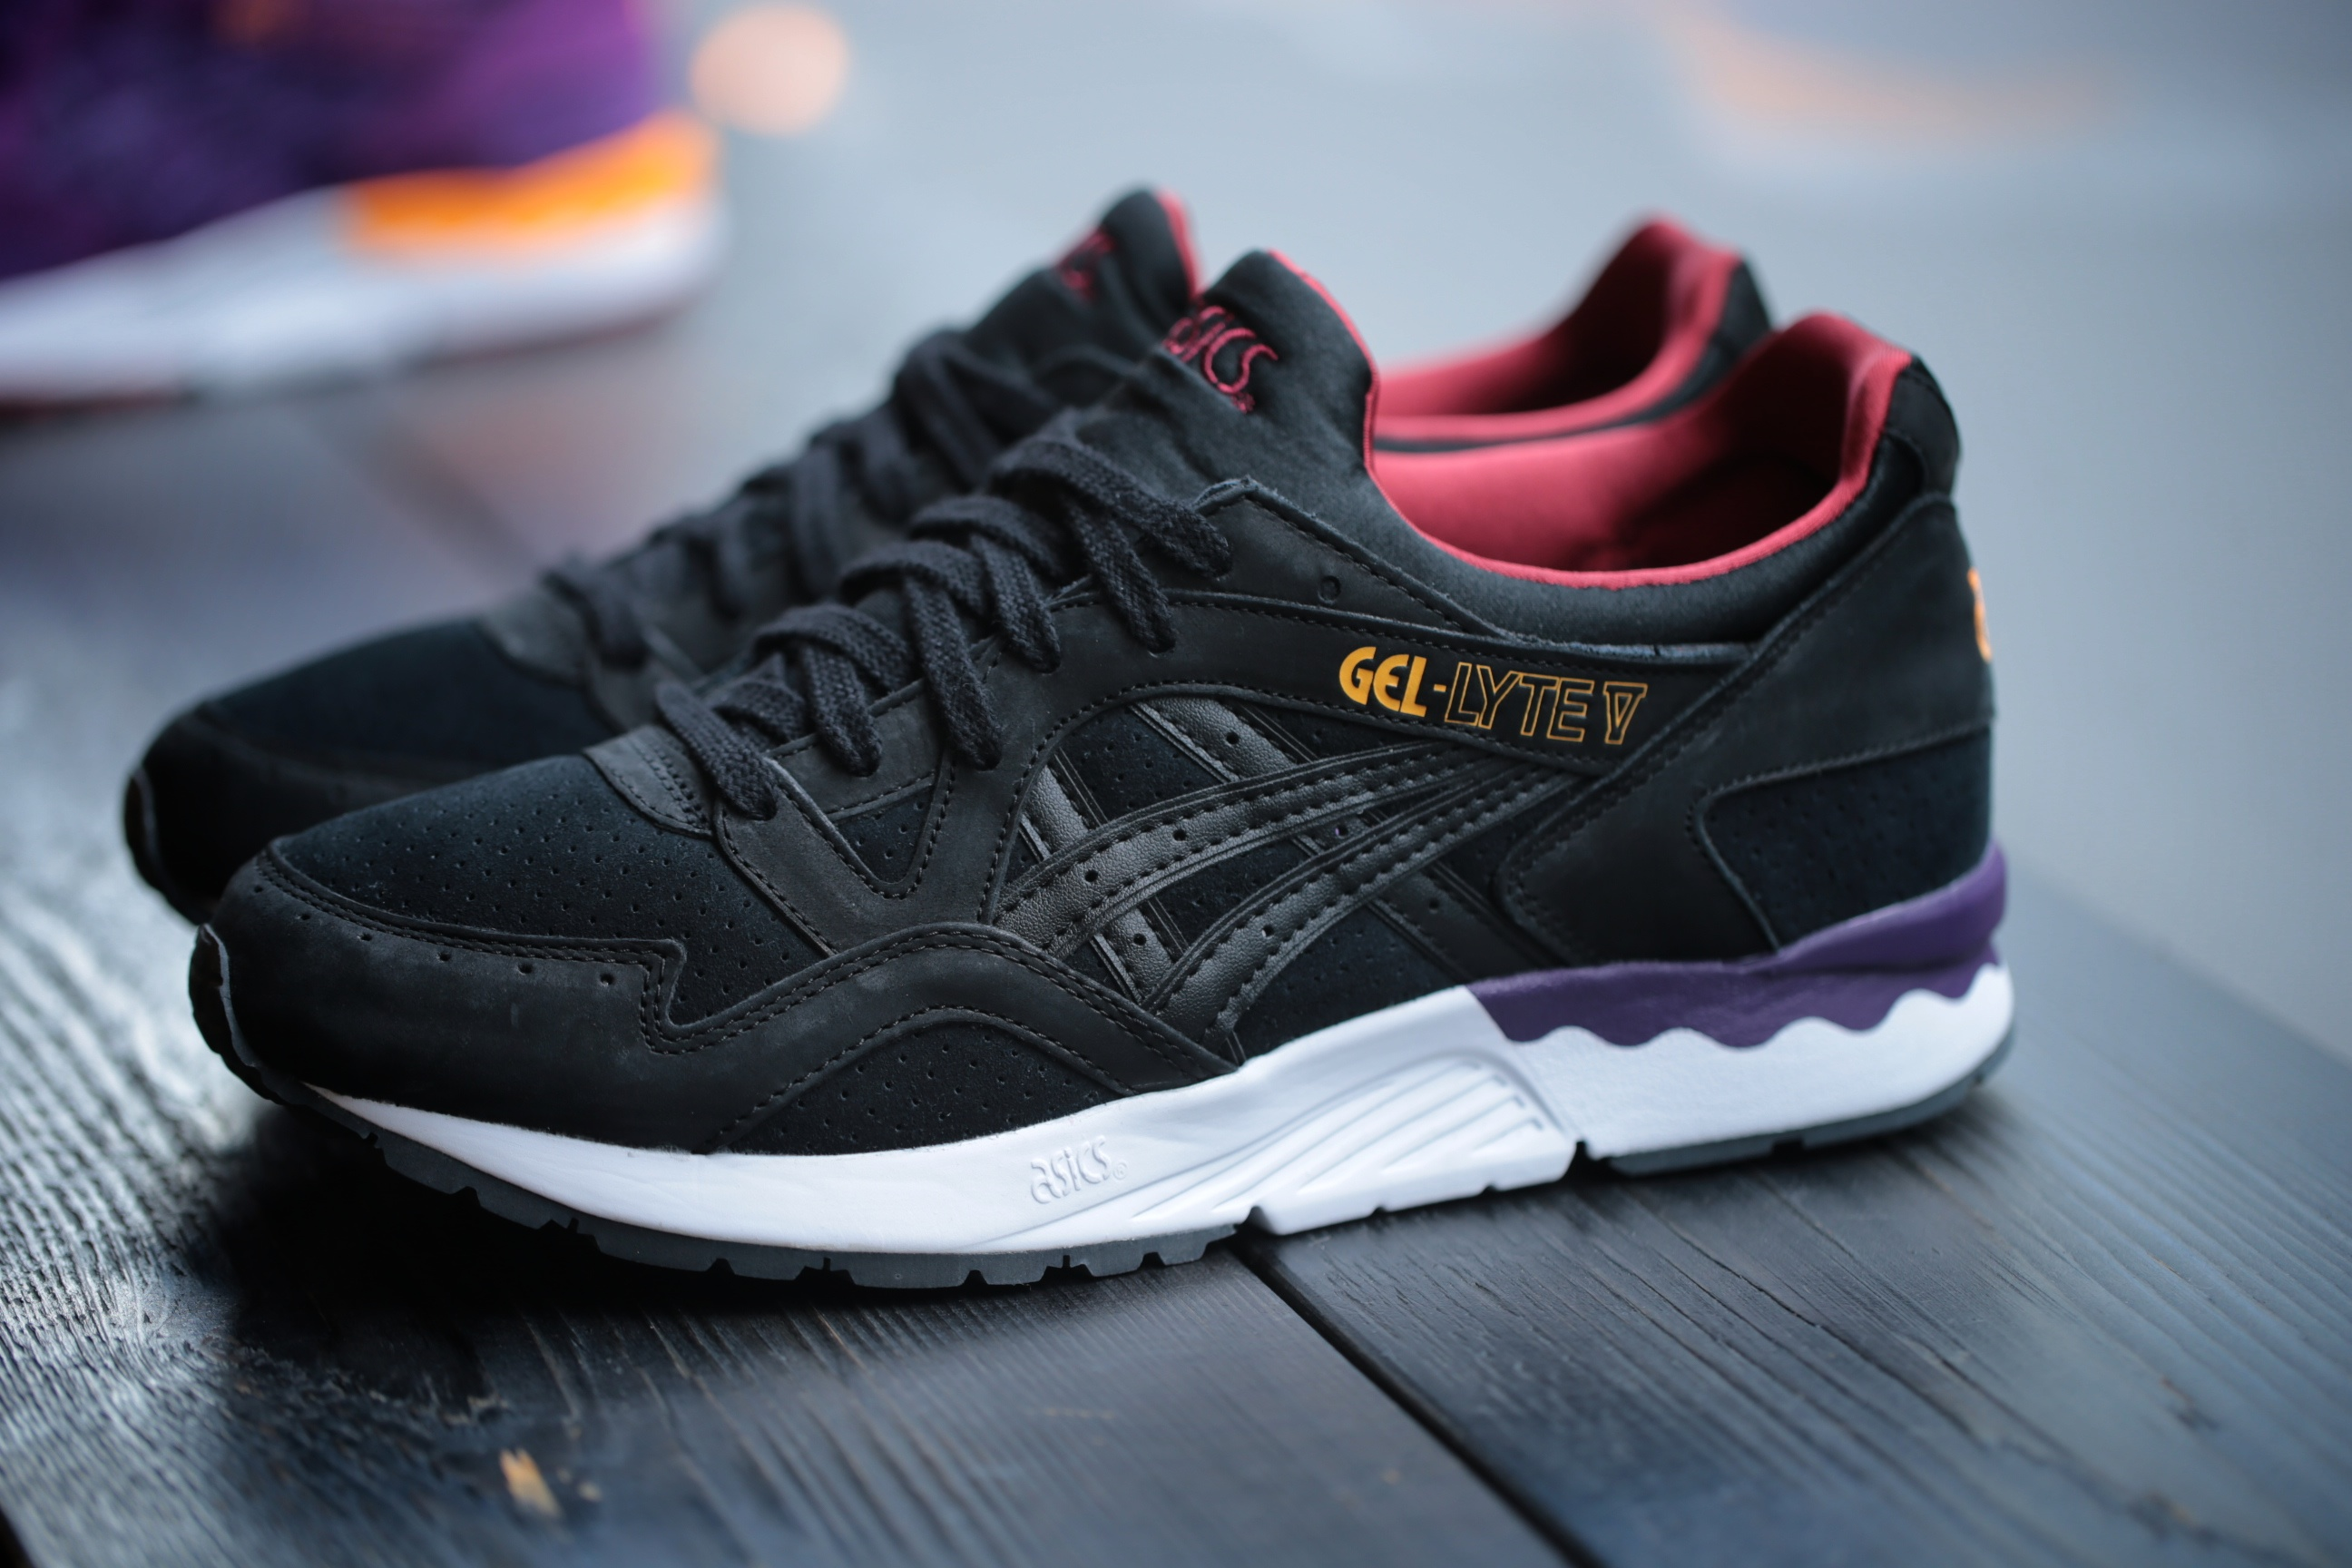 asics gel lyte 5 for sale